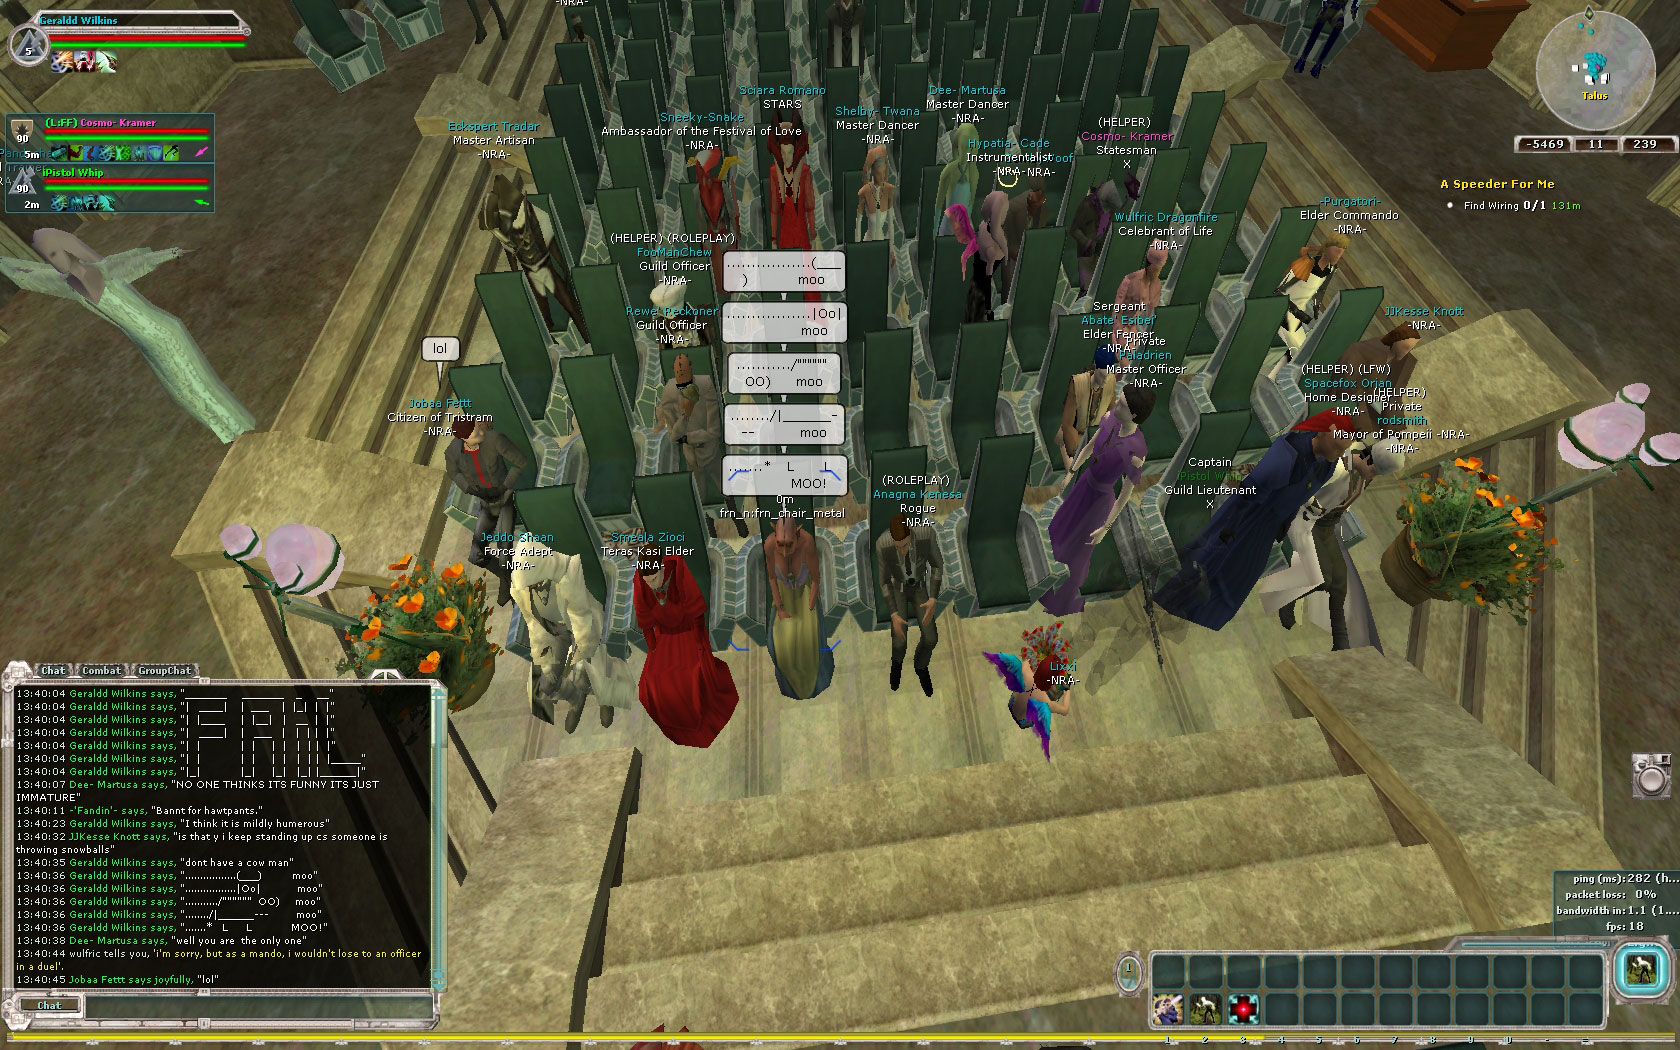 Attending a wedding on Bria as a cross server dignitary. I was their most popular guest.